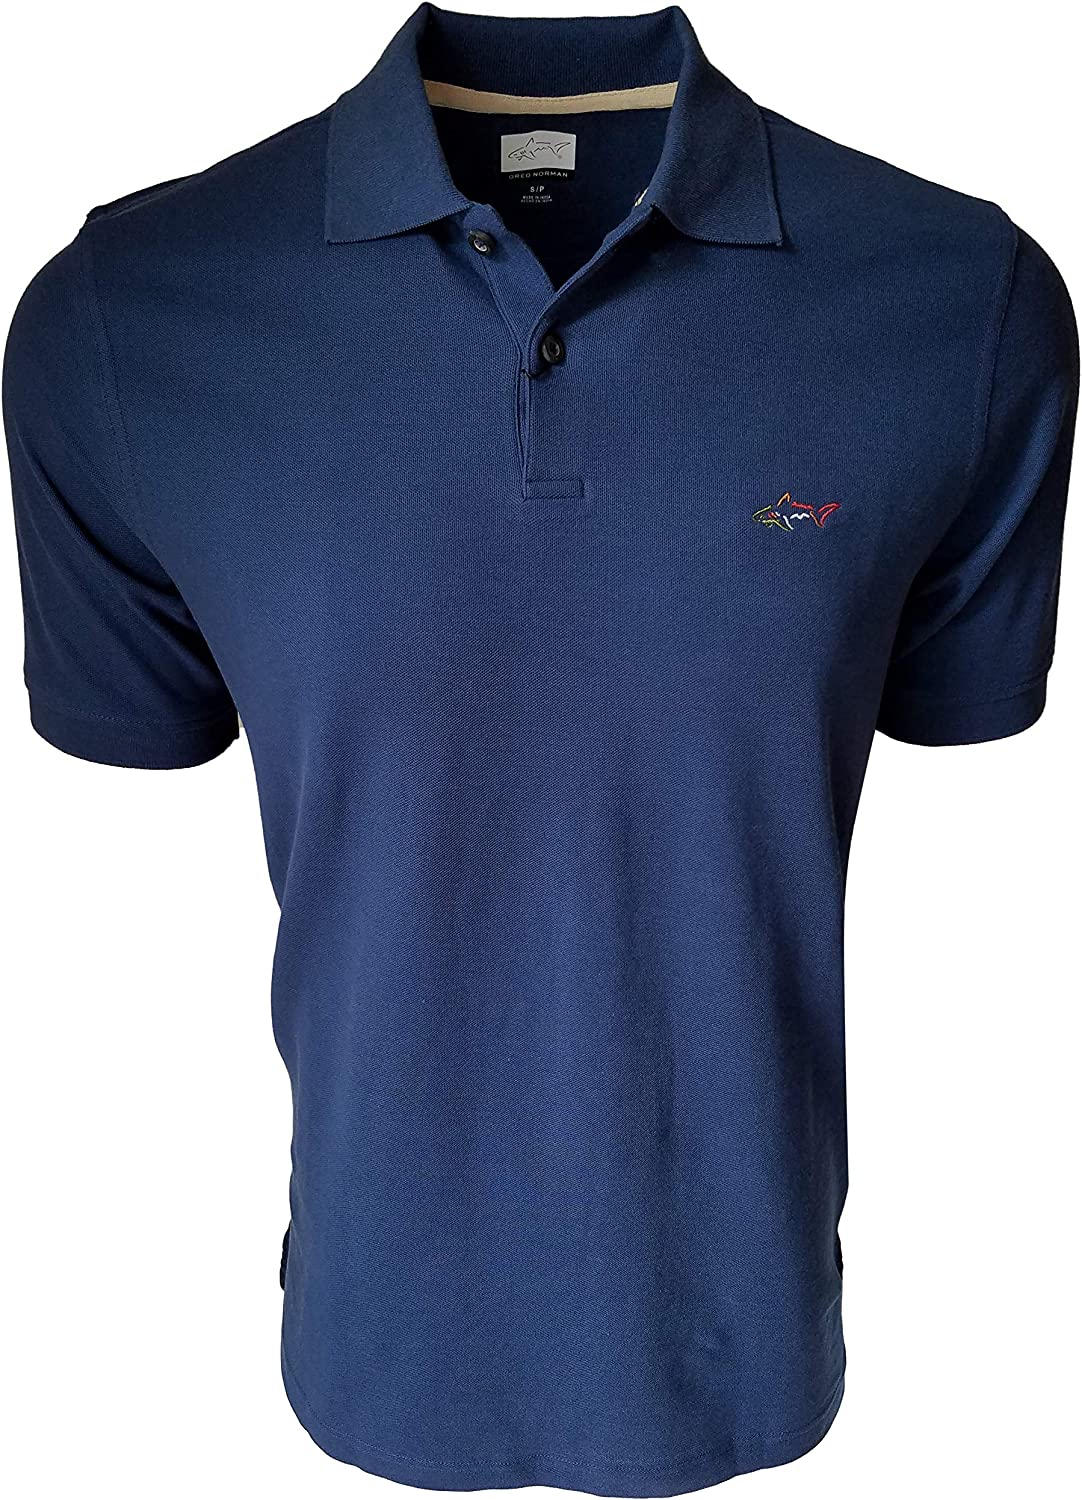 Greg Norman Mens Cotton Polo Shirt (X-Large, Navy)